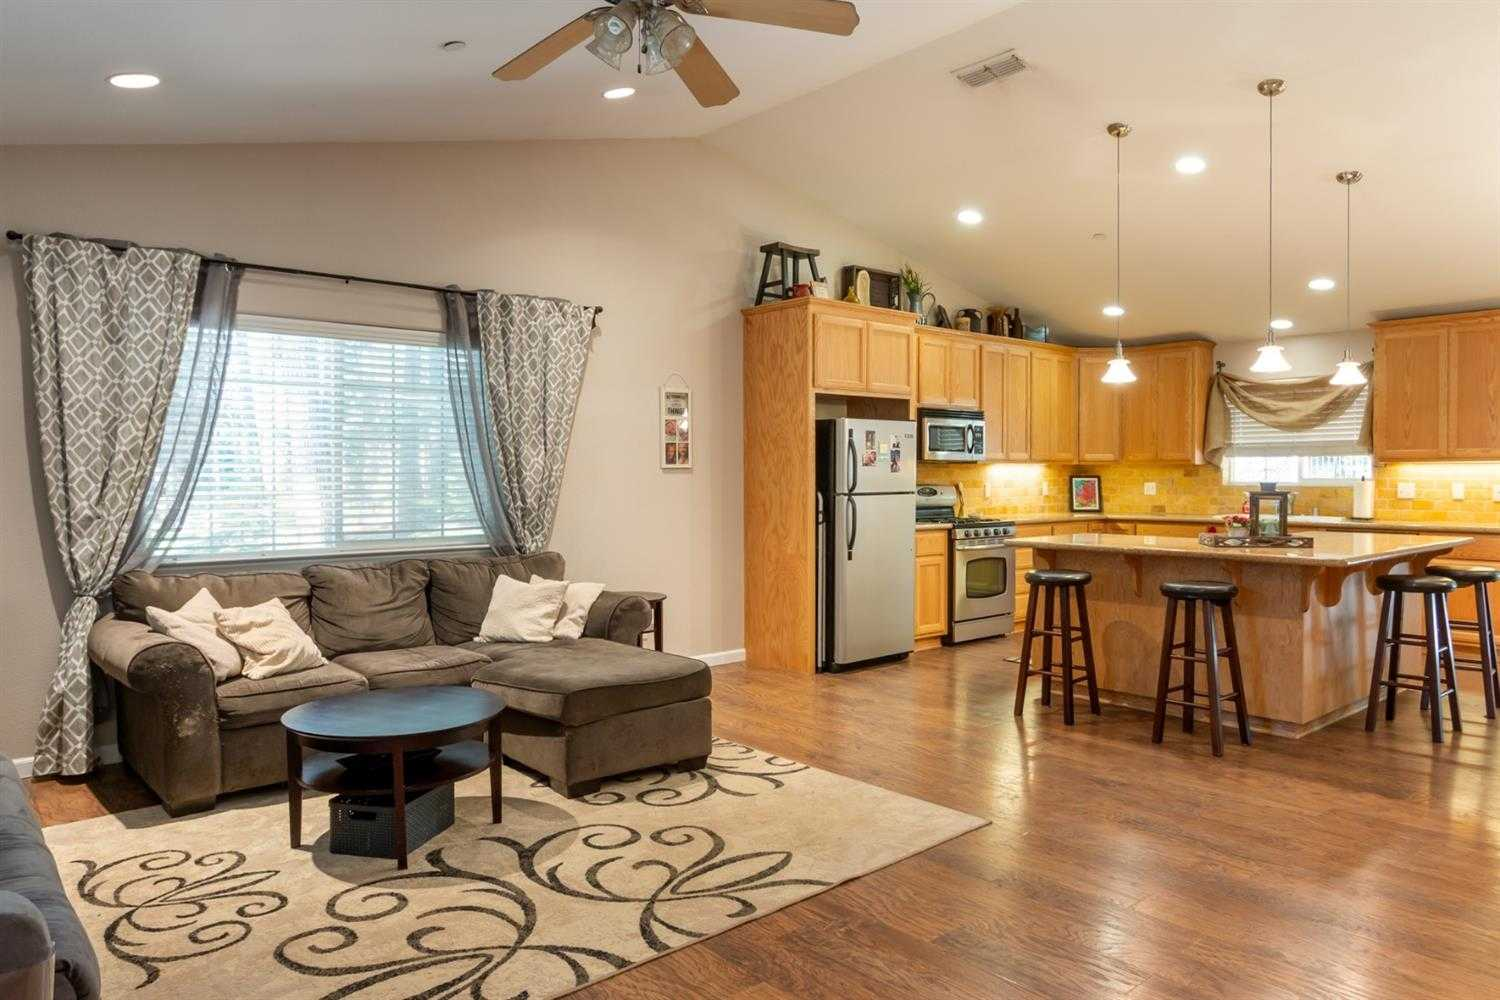 $350,000 - 3Br/2Ba -  for Sale in Pollock Pines